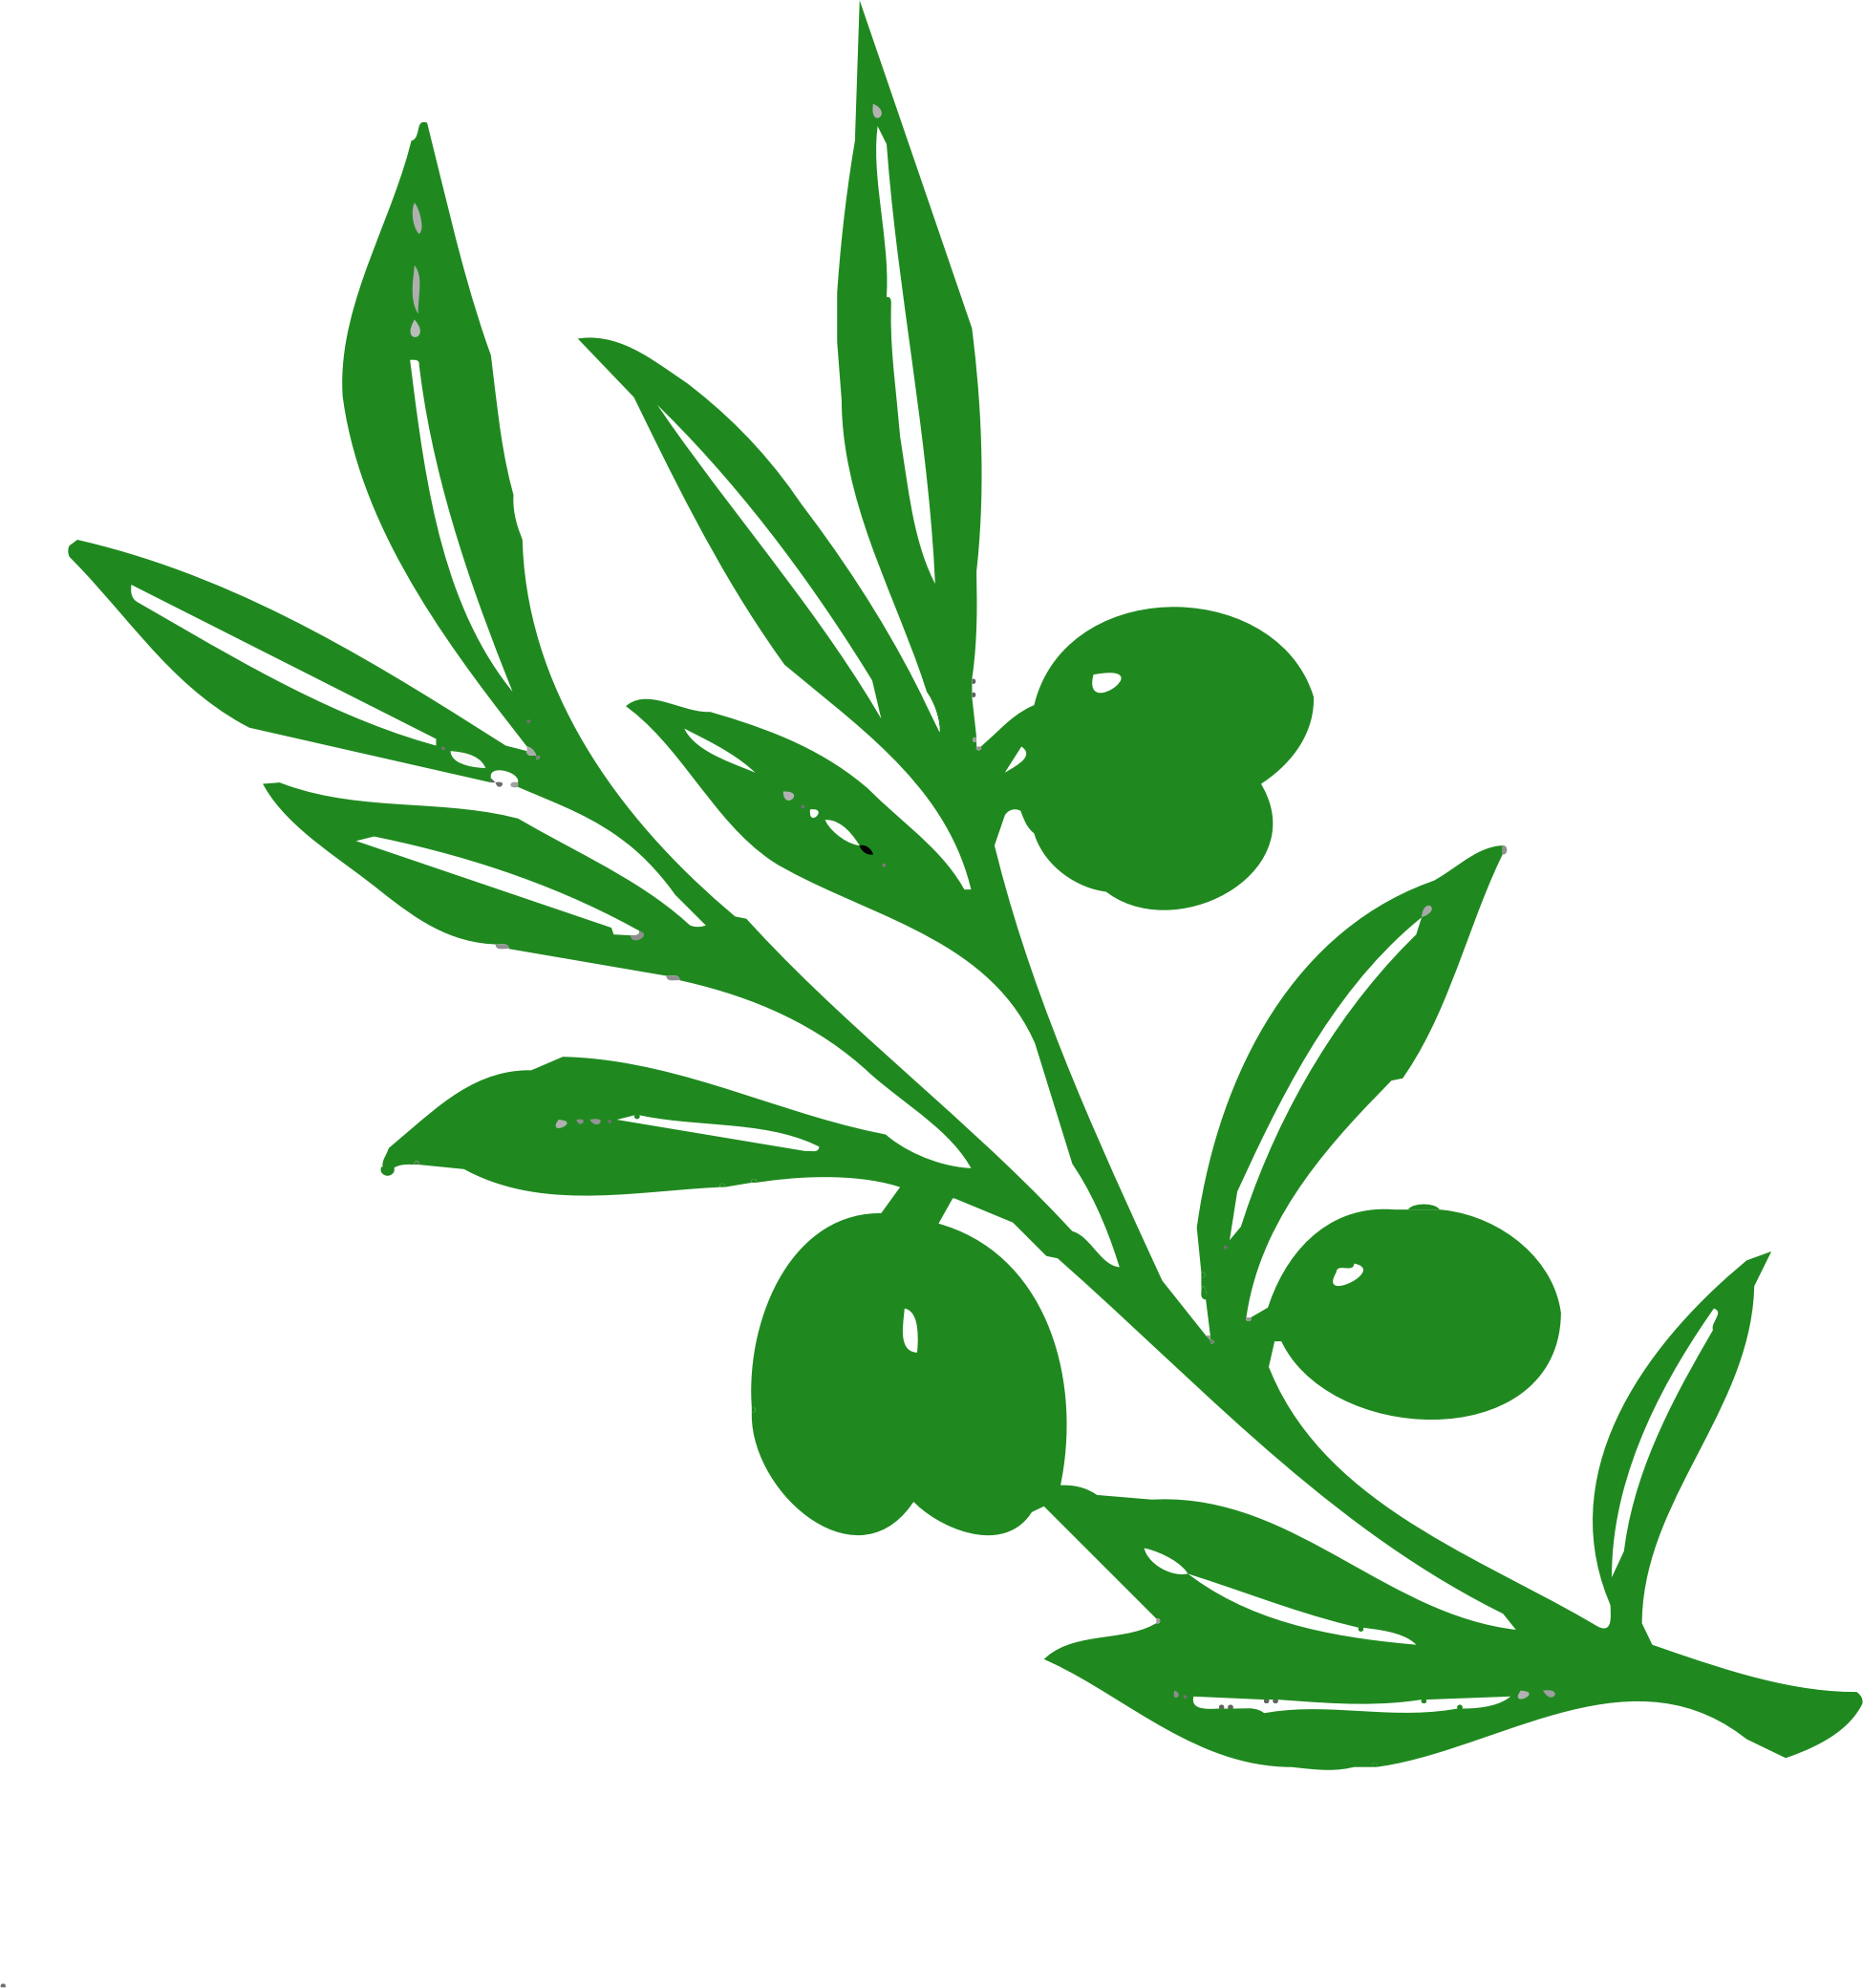 Branch clipart olive branch. Tree big image png